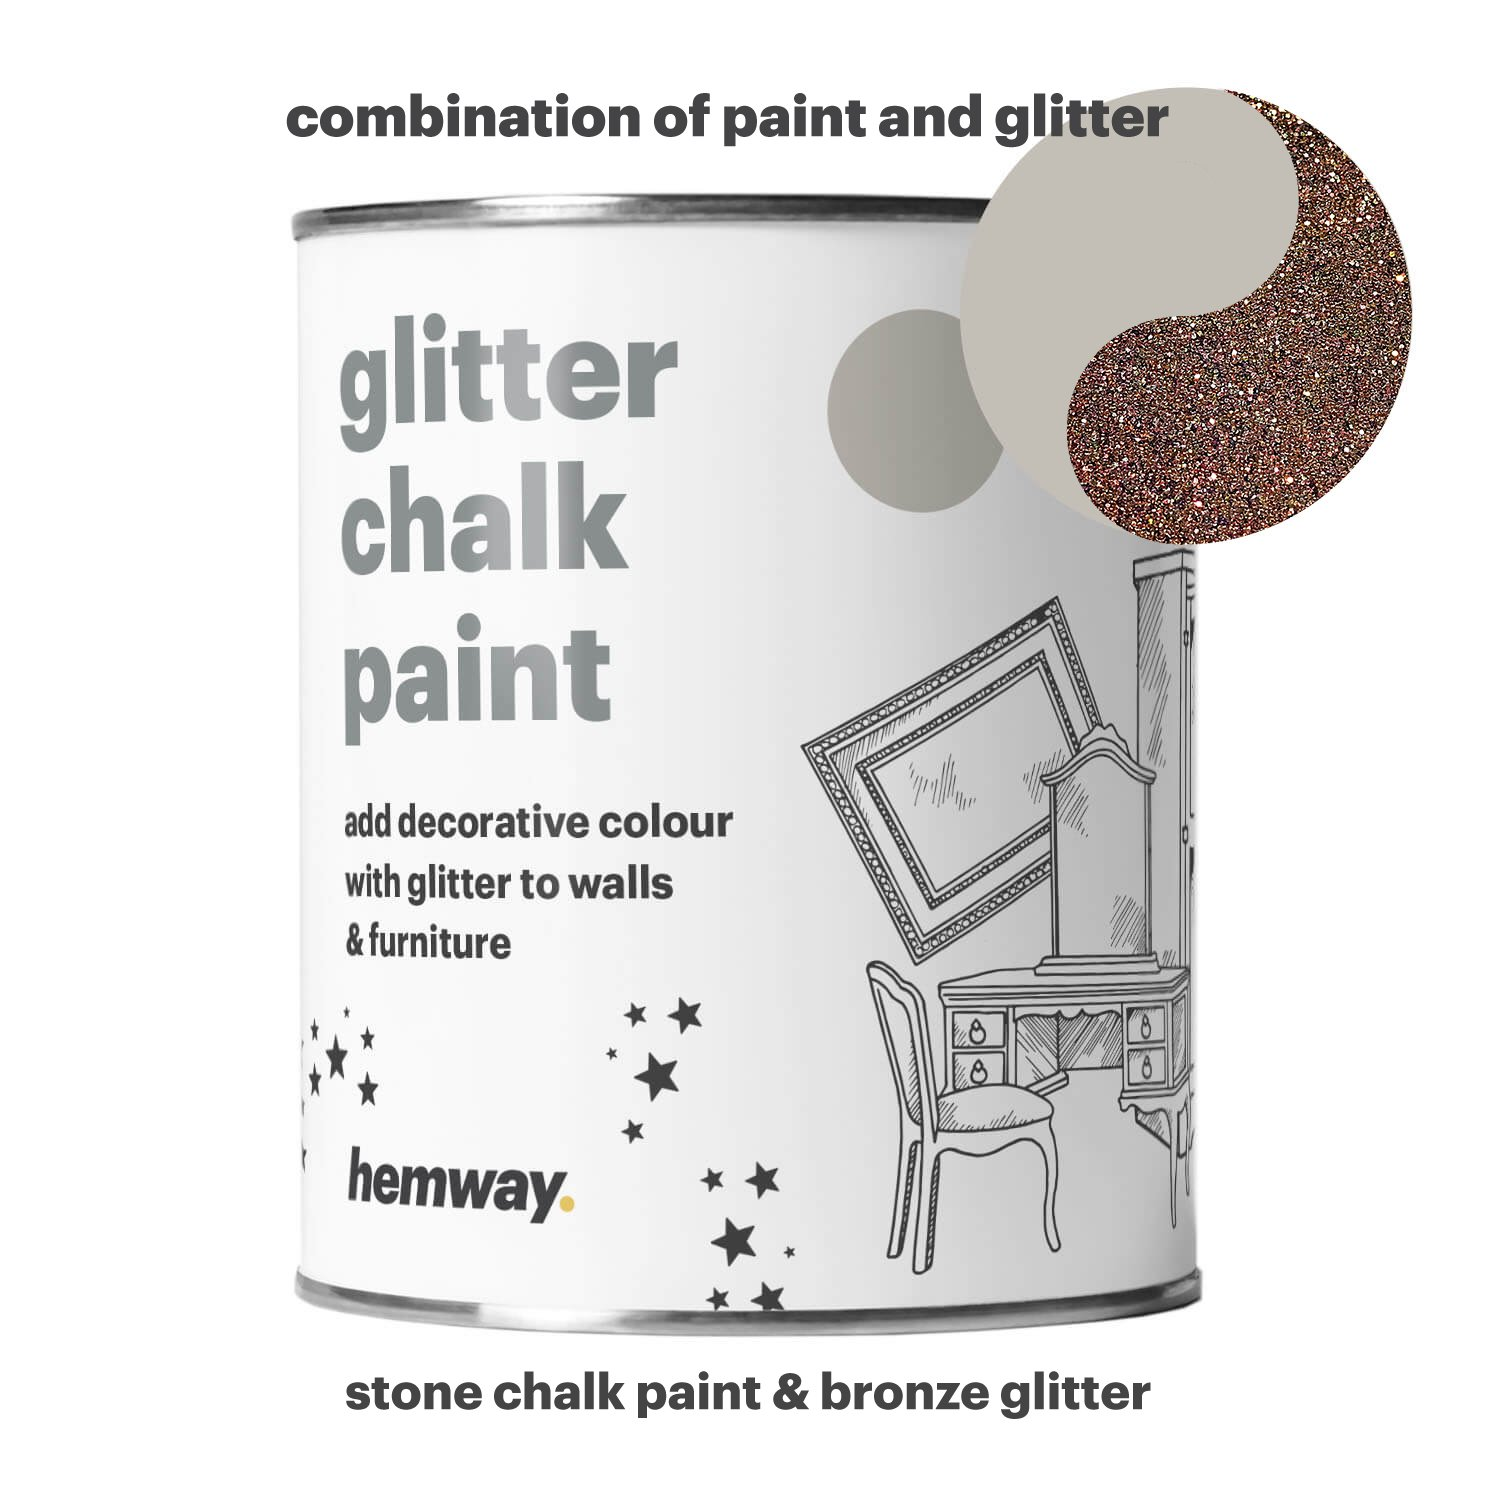 Hemway Stone Chalk Paint (with Bronze Glitter) Sparkle Matt finish Wall and Furniture Paint 1L/35oz Shabby Chic Vintage Chalky Crystal (25 Glittery Colours Available) by Hemway